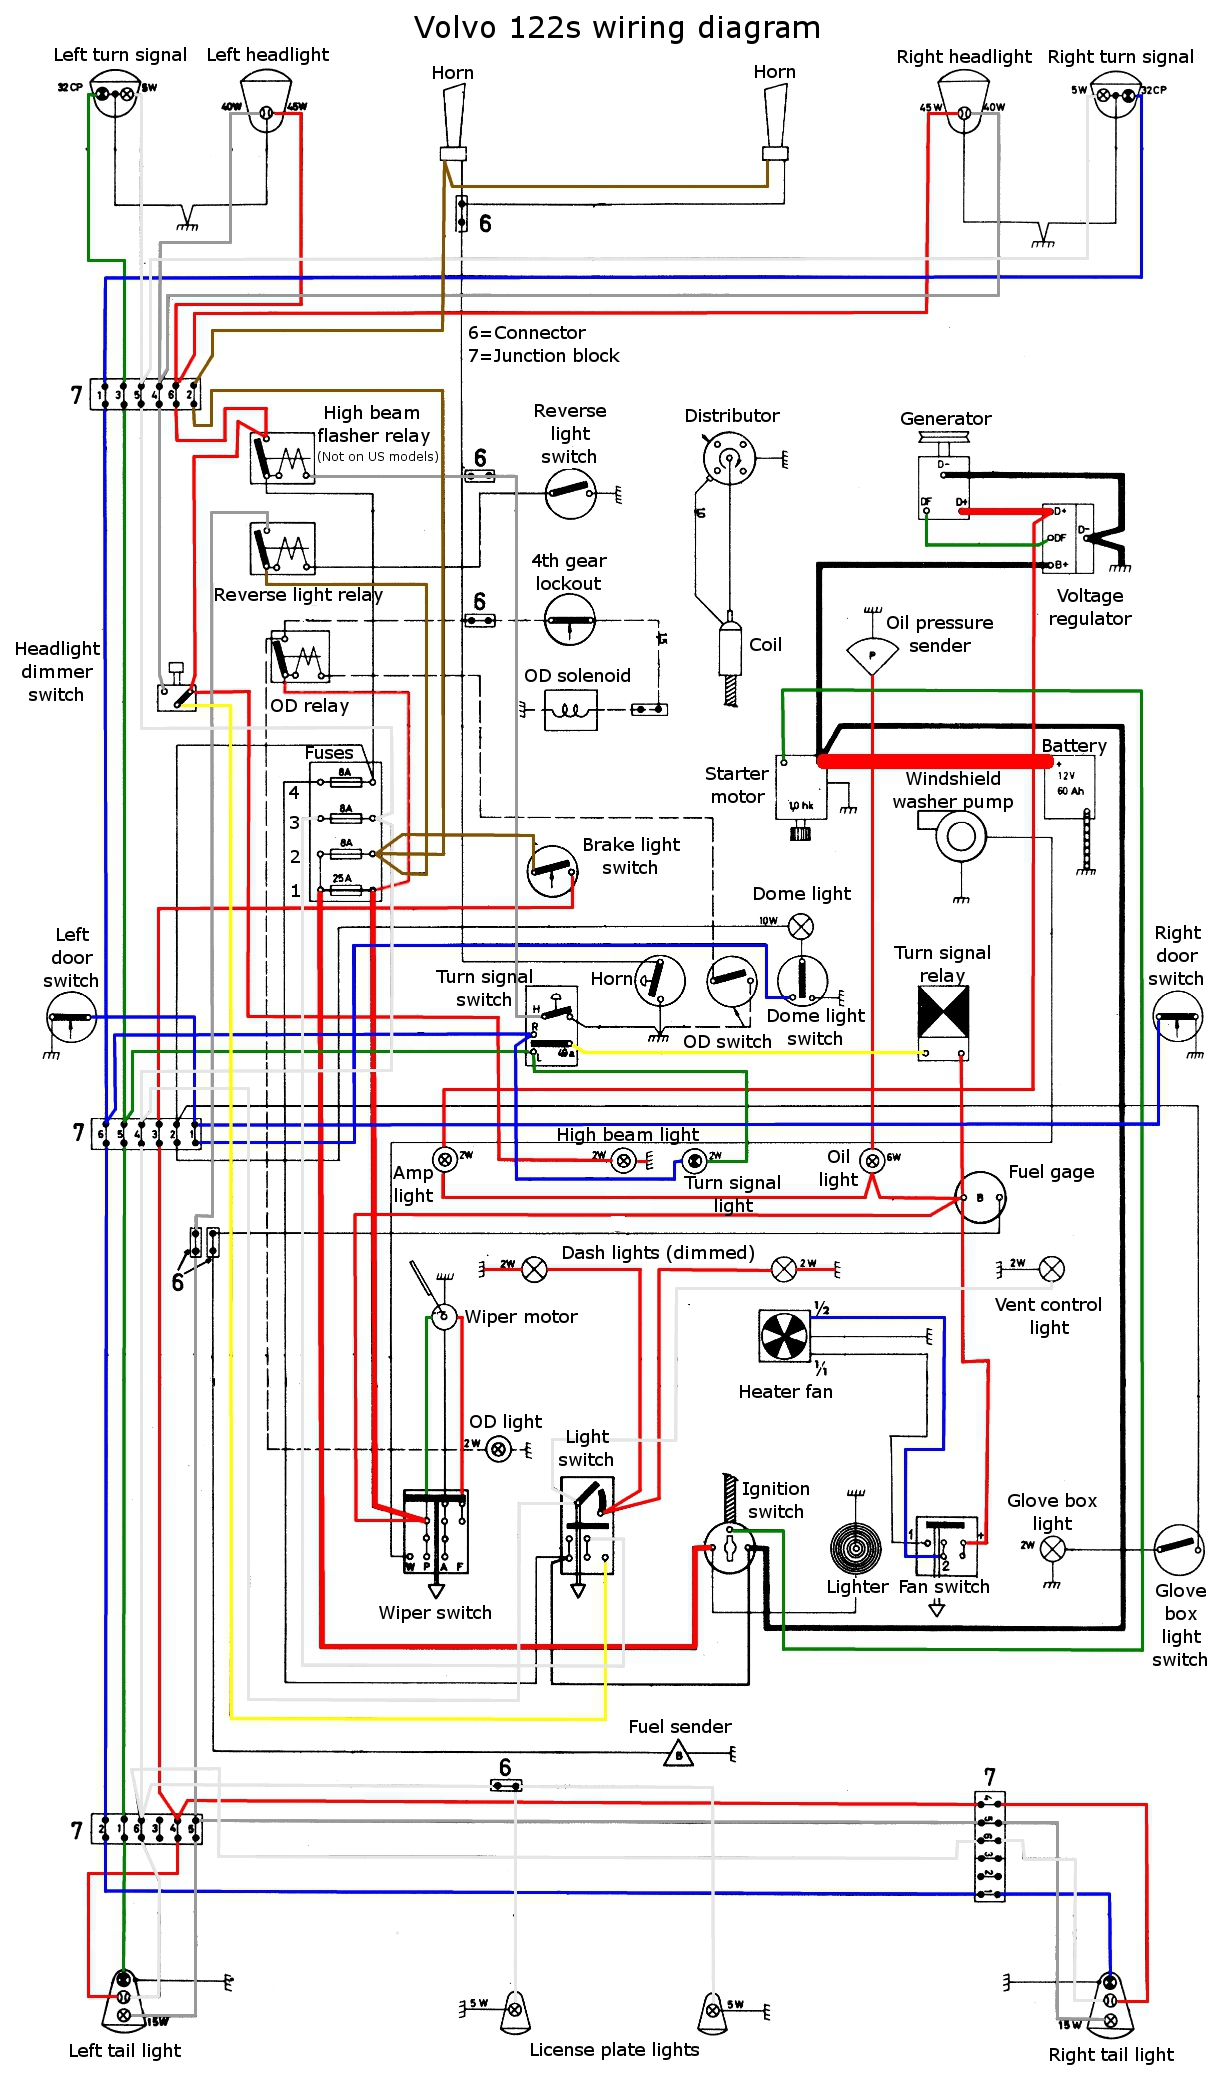 hight resolution of 1969 volvo 164 wiring diagram wiring diagram 1969 volvo 164 wiring diagram